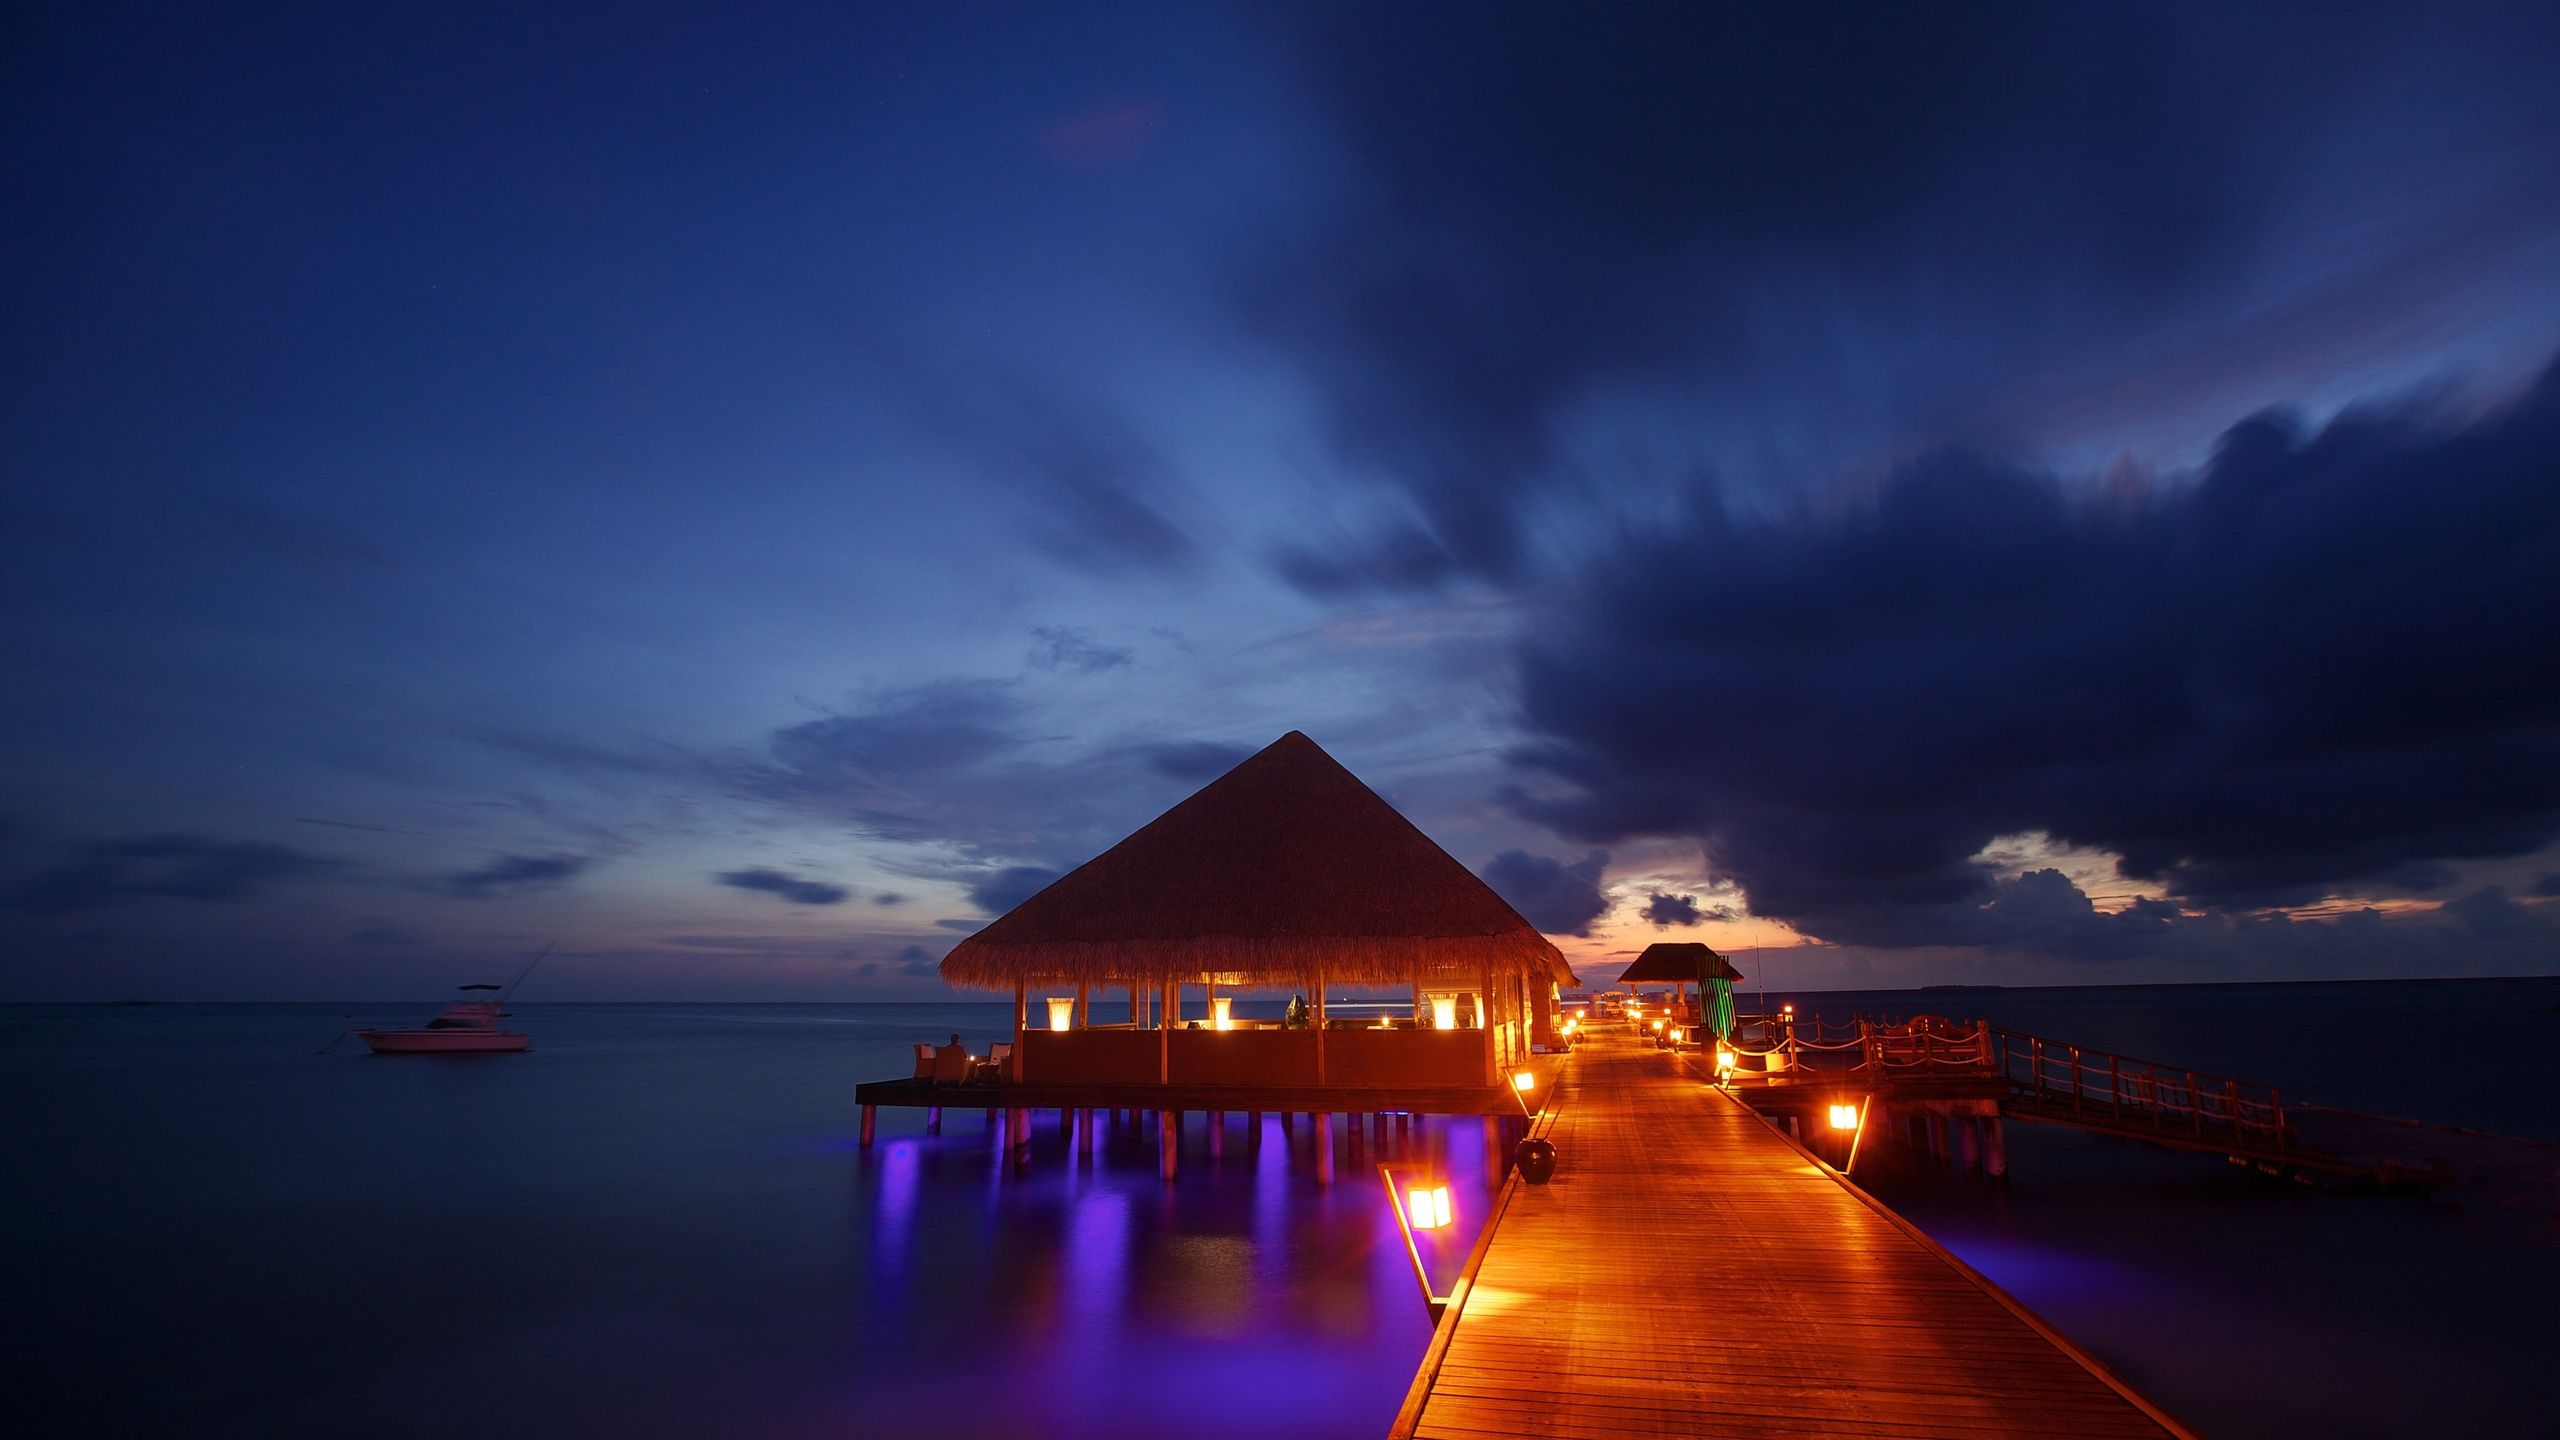 night lights maldives tropical beach bungalow ocean sea sunset